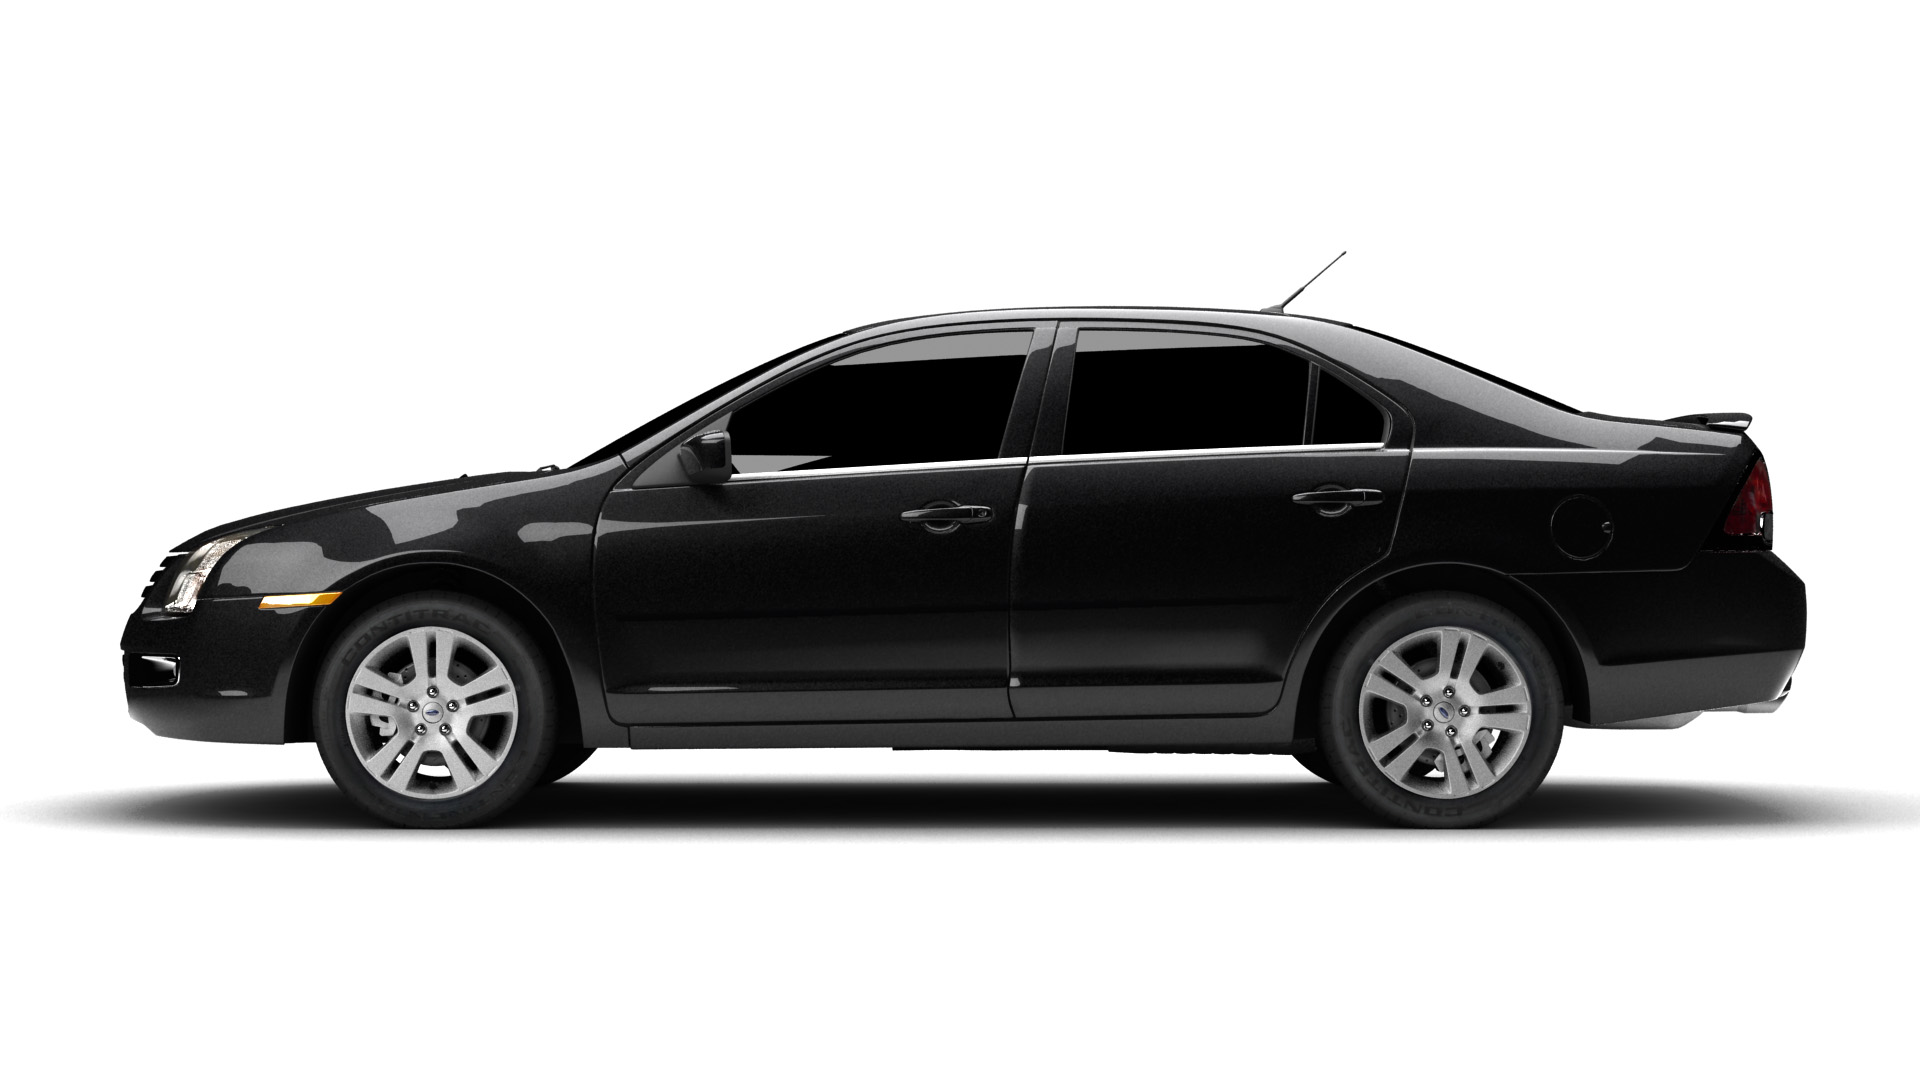 ford_fusion_image01